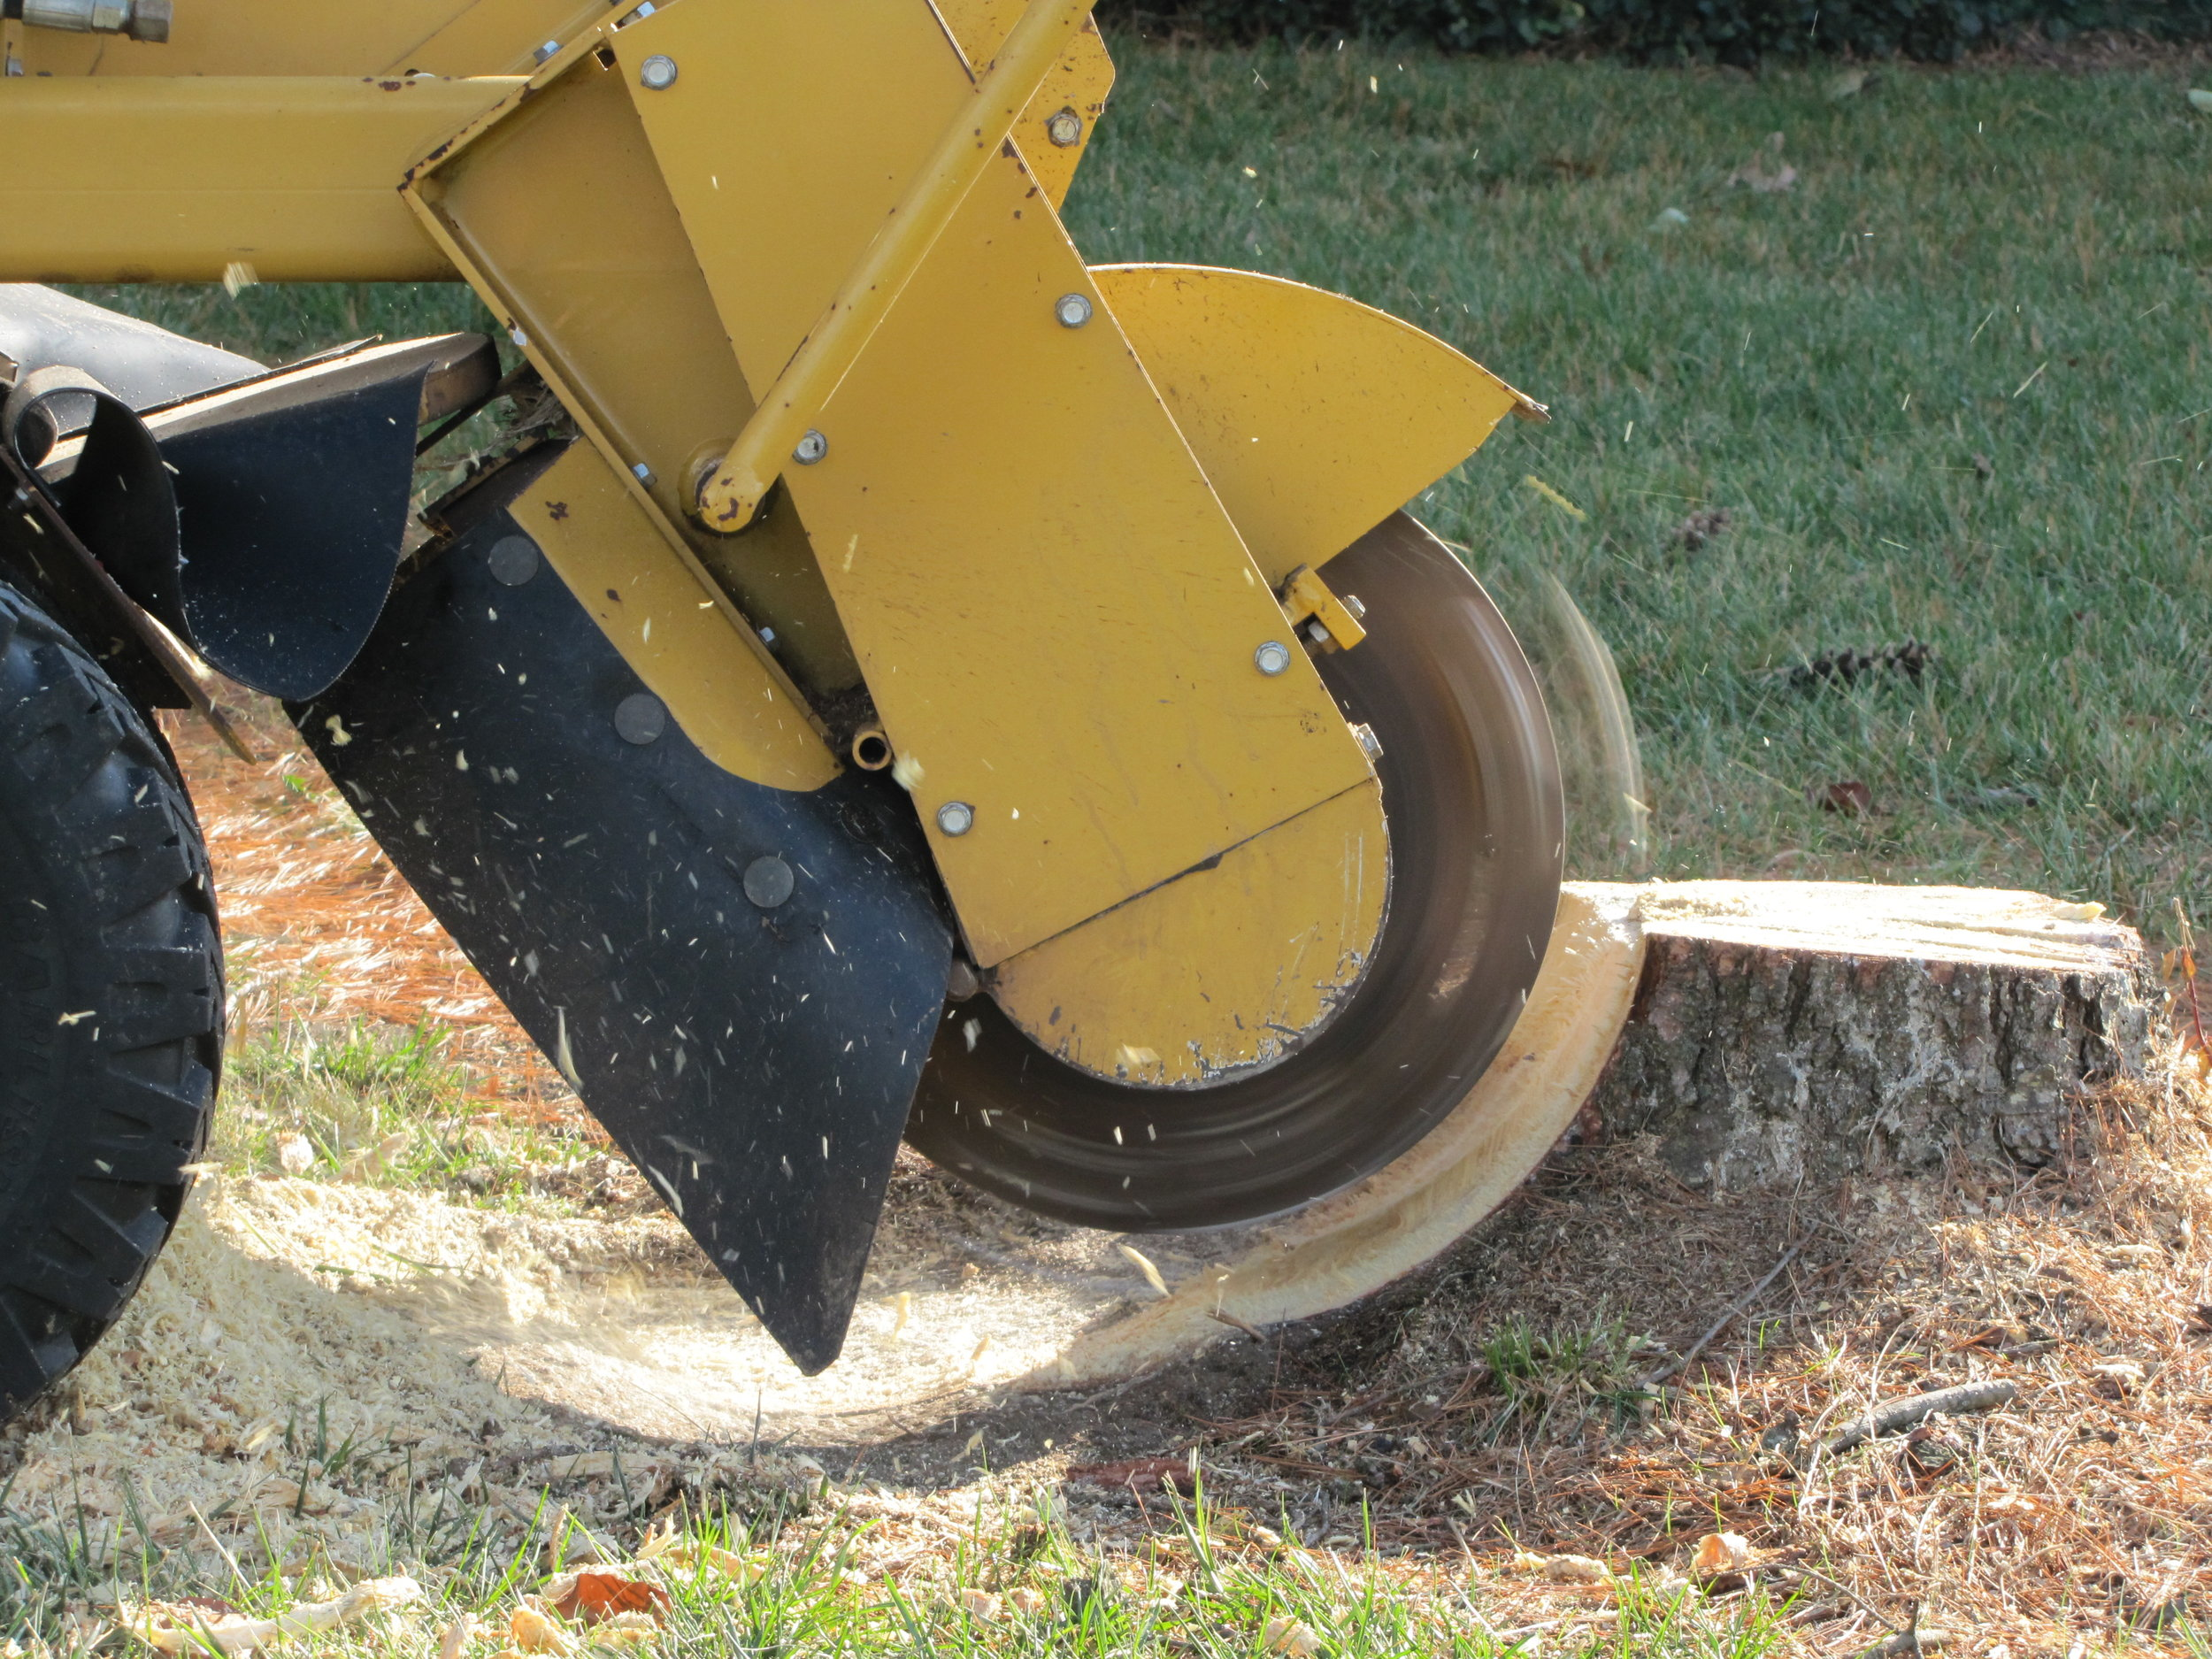 STUMP REMOVAL - Dorshak Family Tree Service has a number of different stump grinding options to help you get rid of that unwanted or unsightly stump in your yard. Click here for more about Stump Grinding Services.